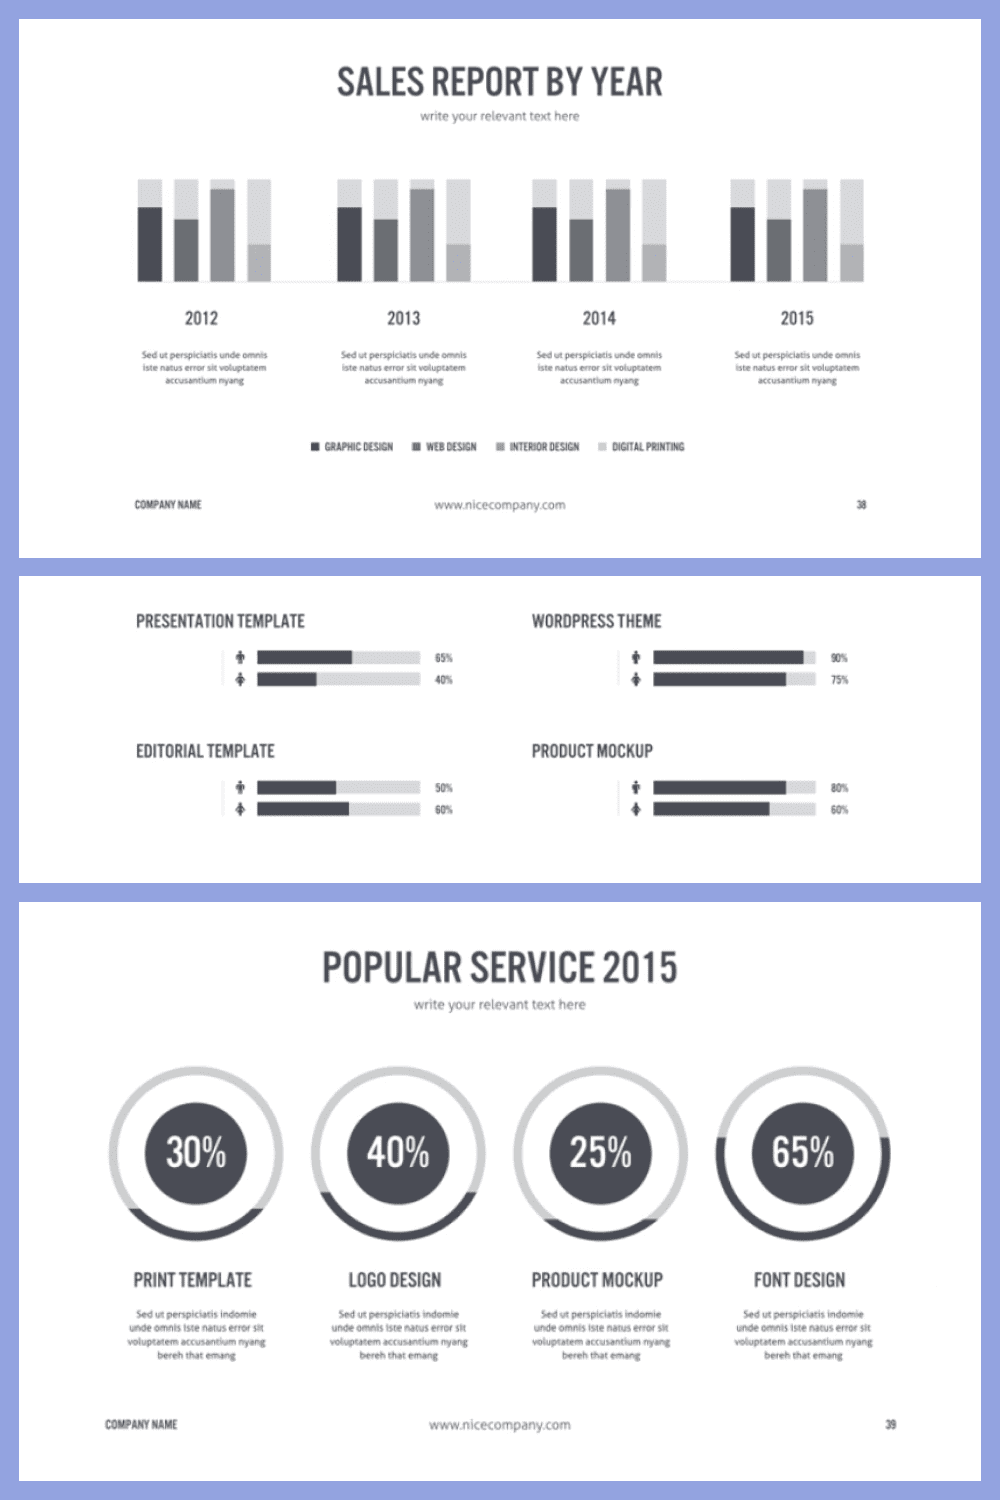 It's cool to create reports and presentations for top management with this template.